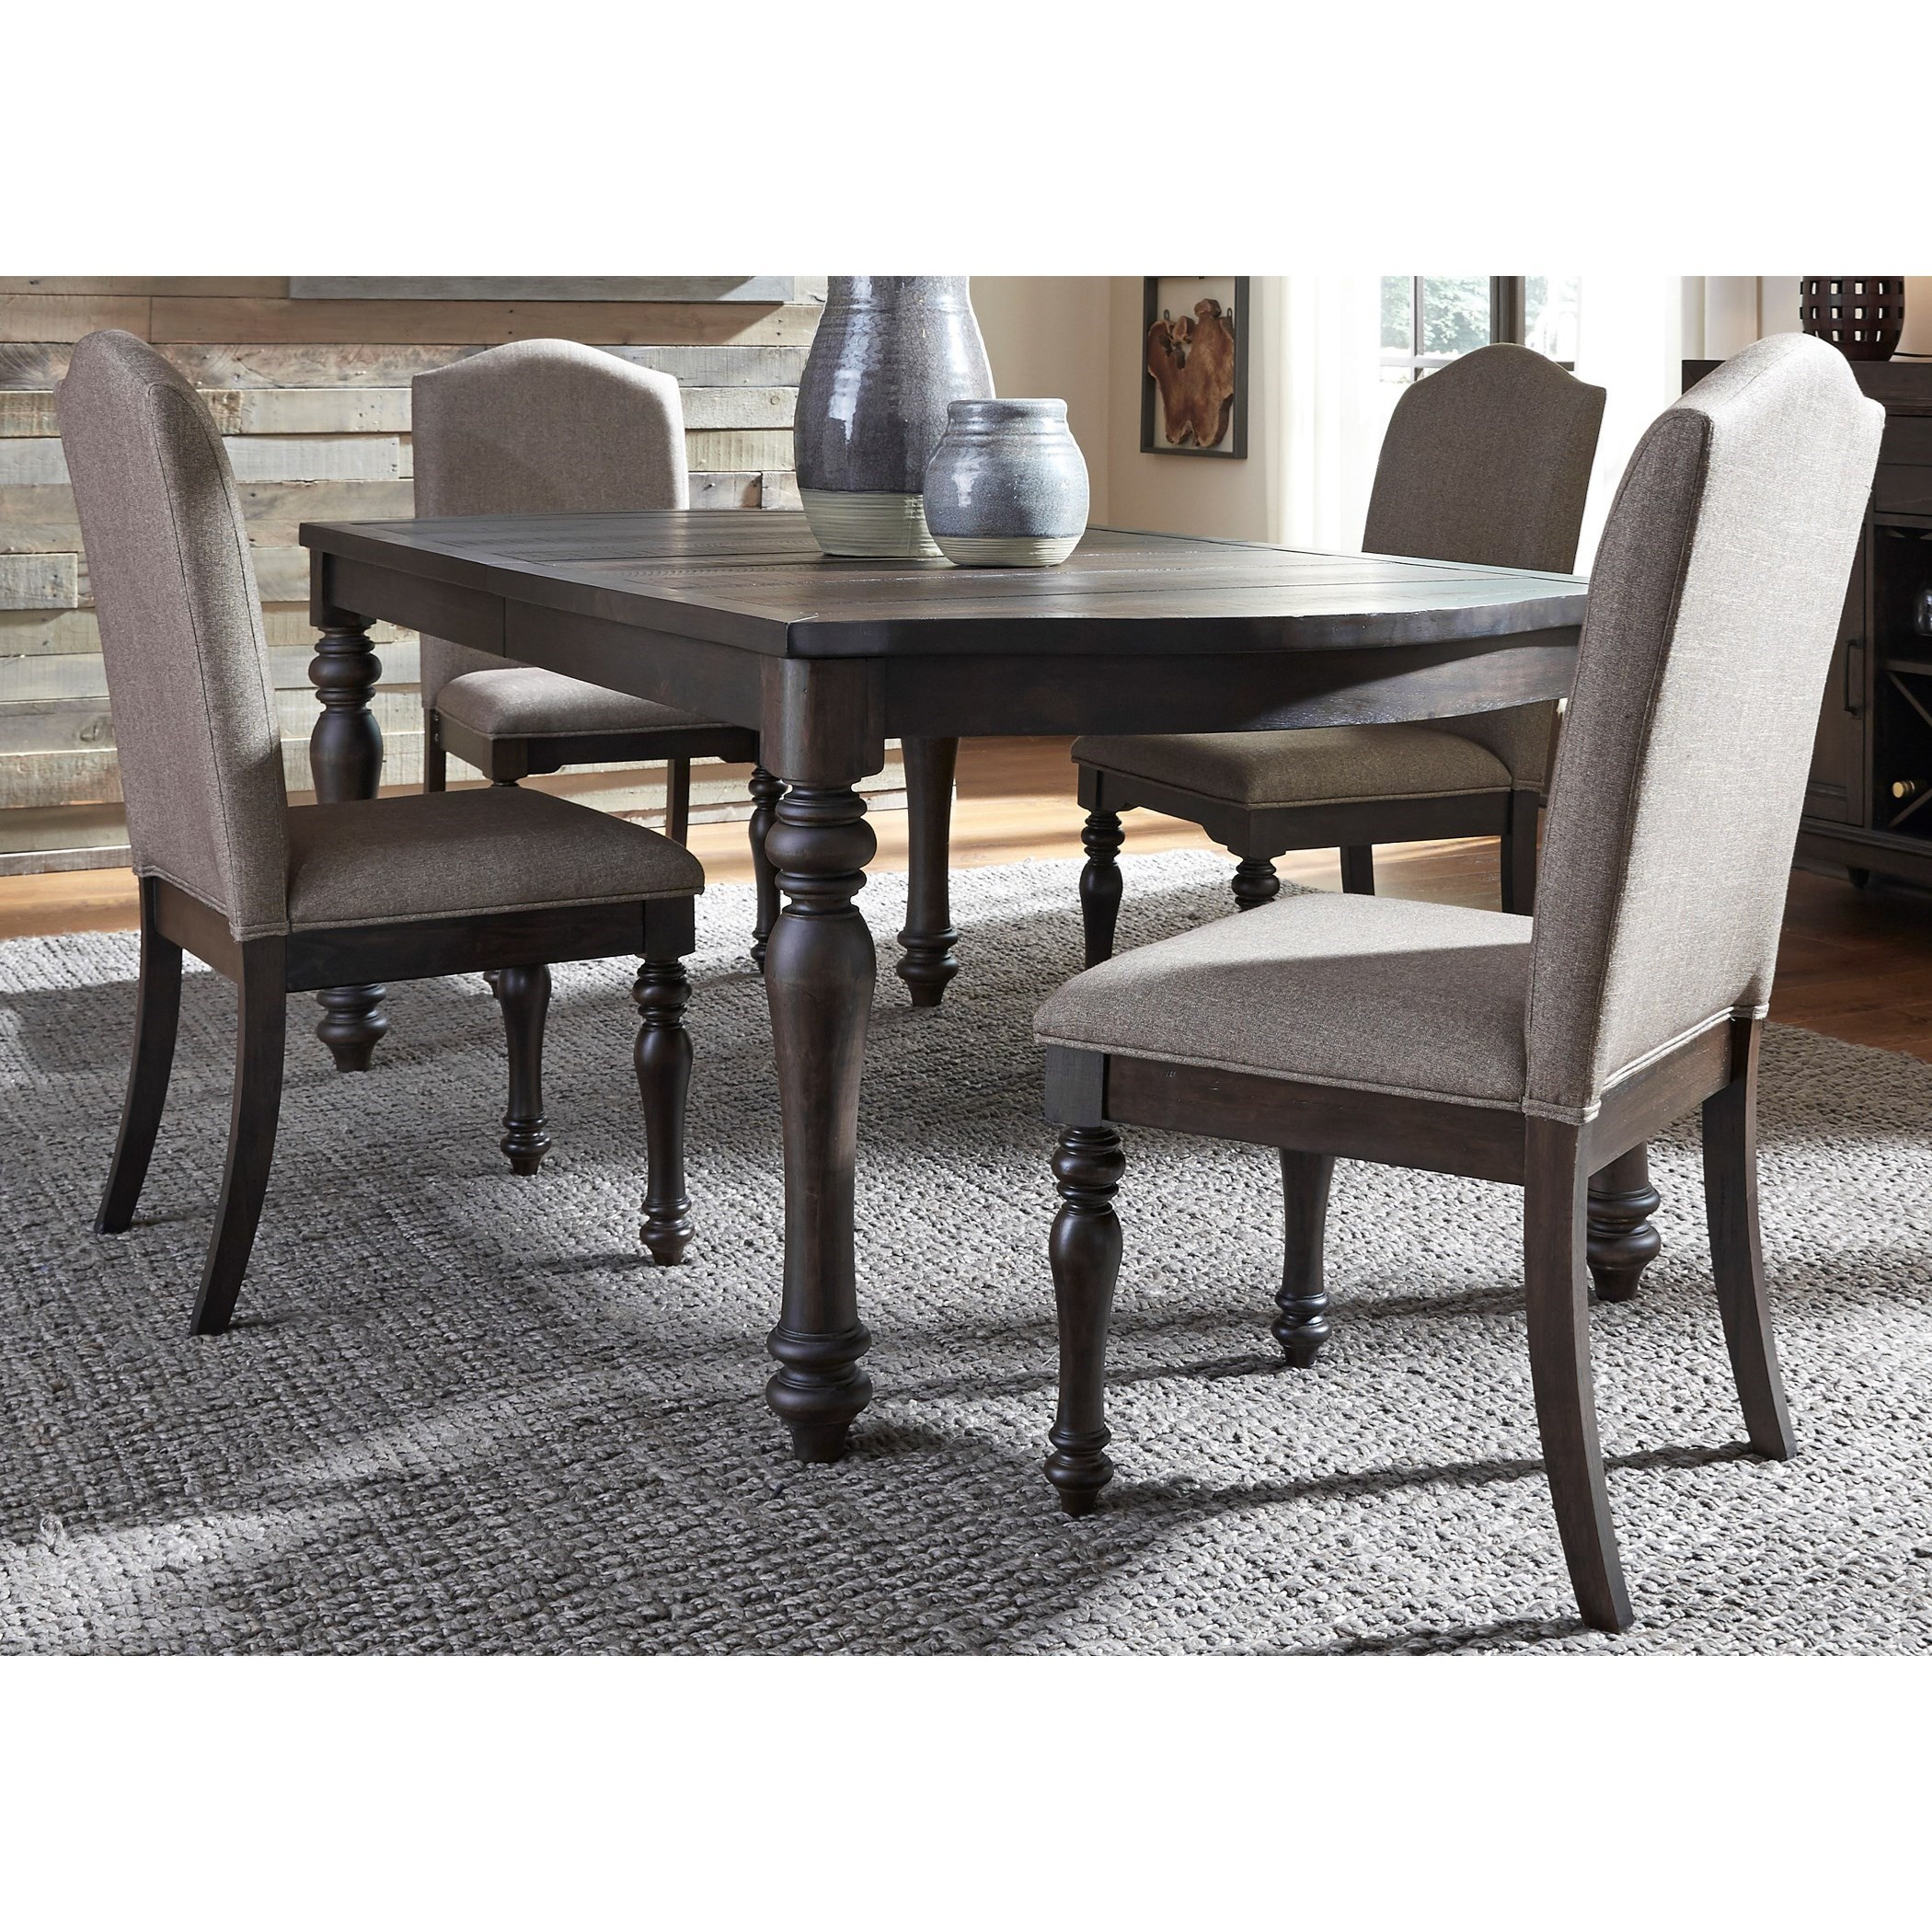 Liberty Furniture Catawba Hills Dining 5 Piece Table & Chair Set - Item Number: 816-DR-5RLS